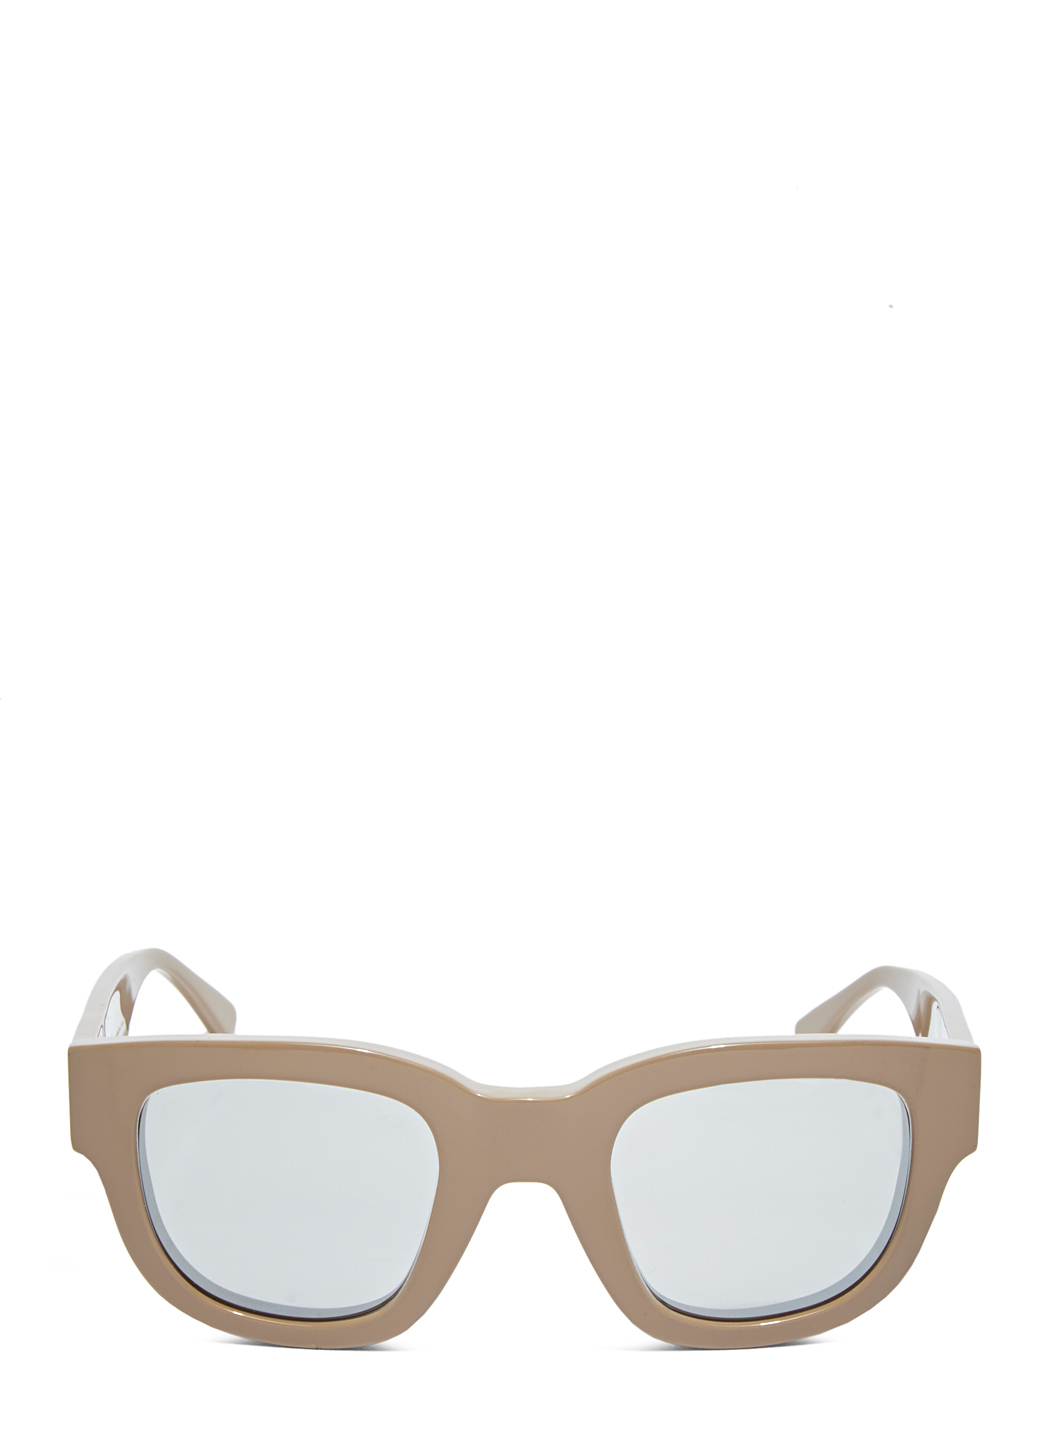 Lyst - Acne Studios Frame A Sunglasses in Natural for Men